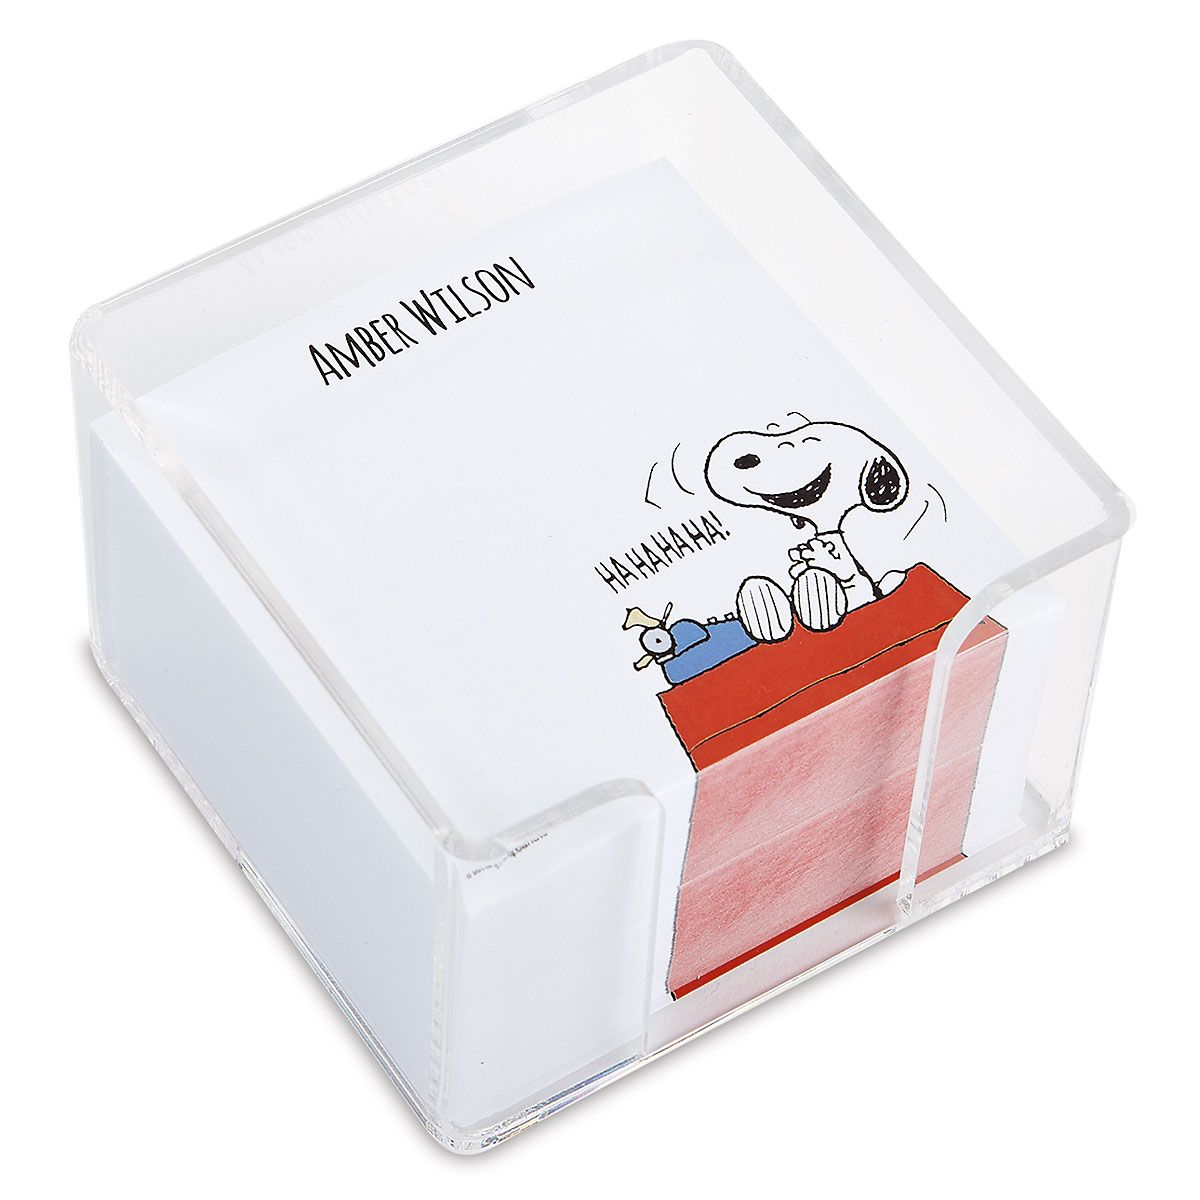 Snoopy's Typewriter Personalized Note Sheets in a Cube